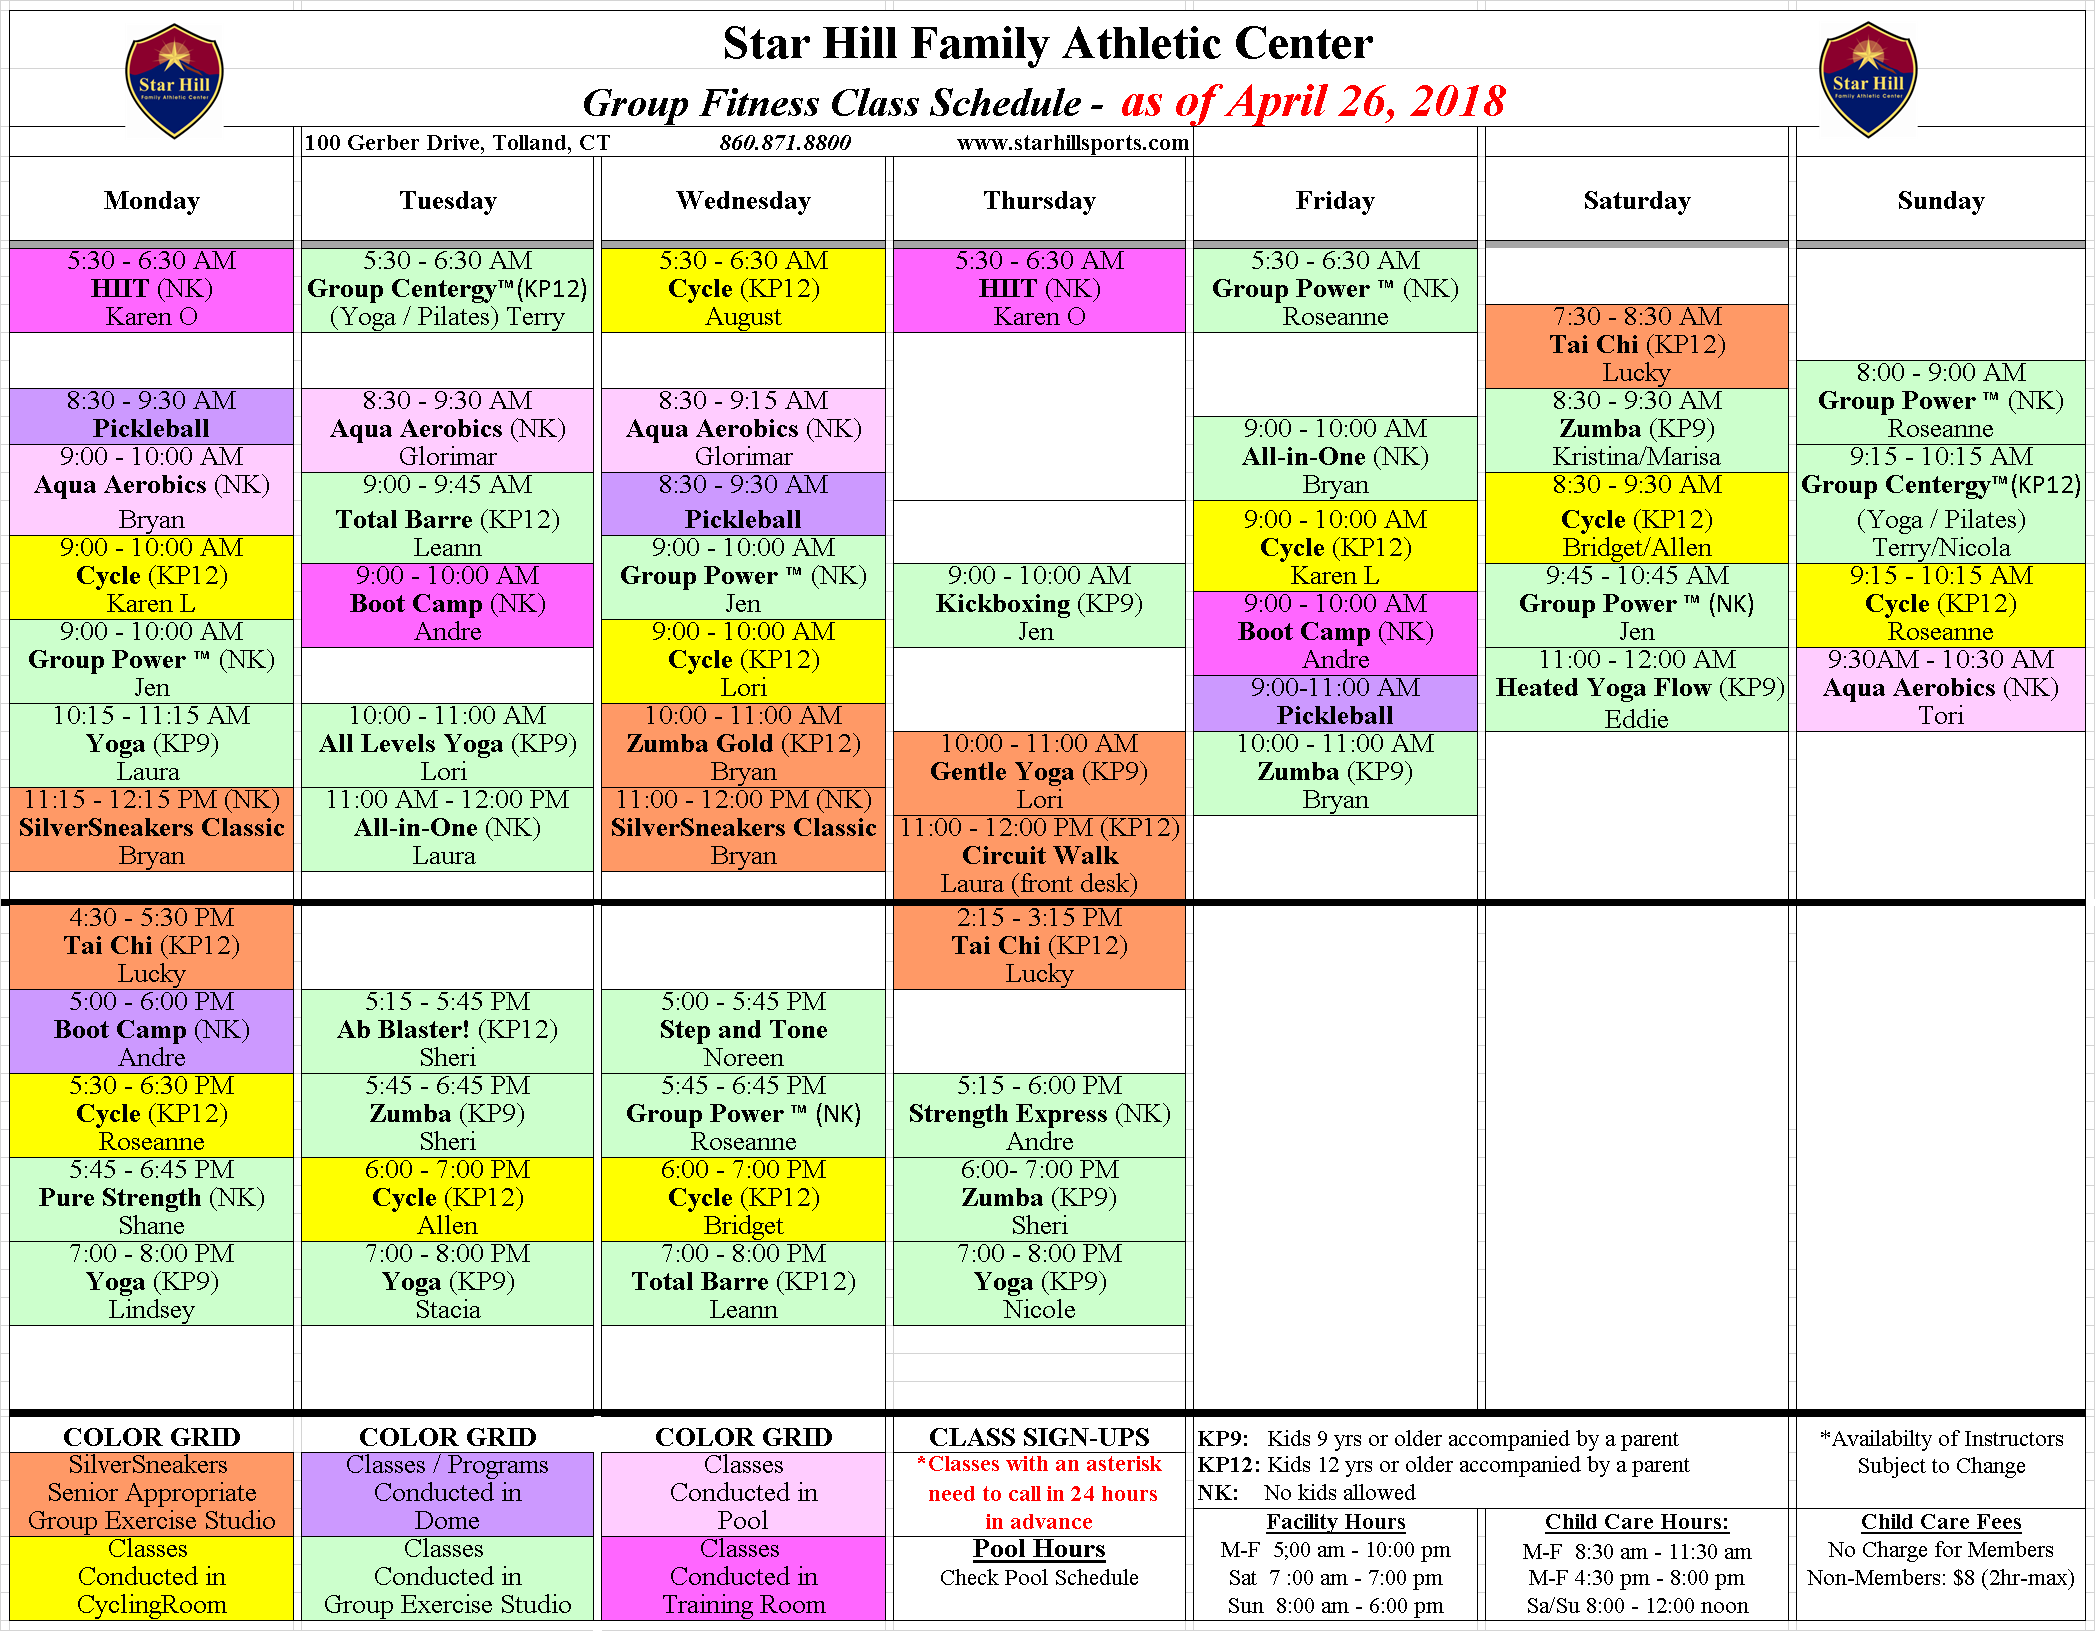 fit sched 4-26-18